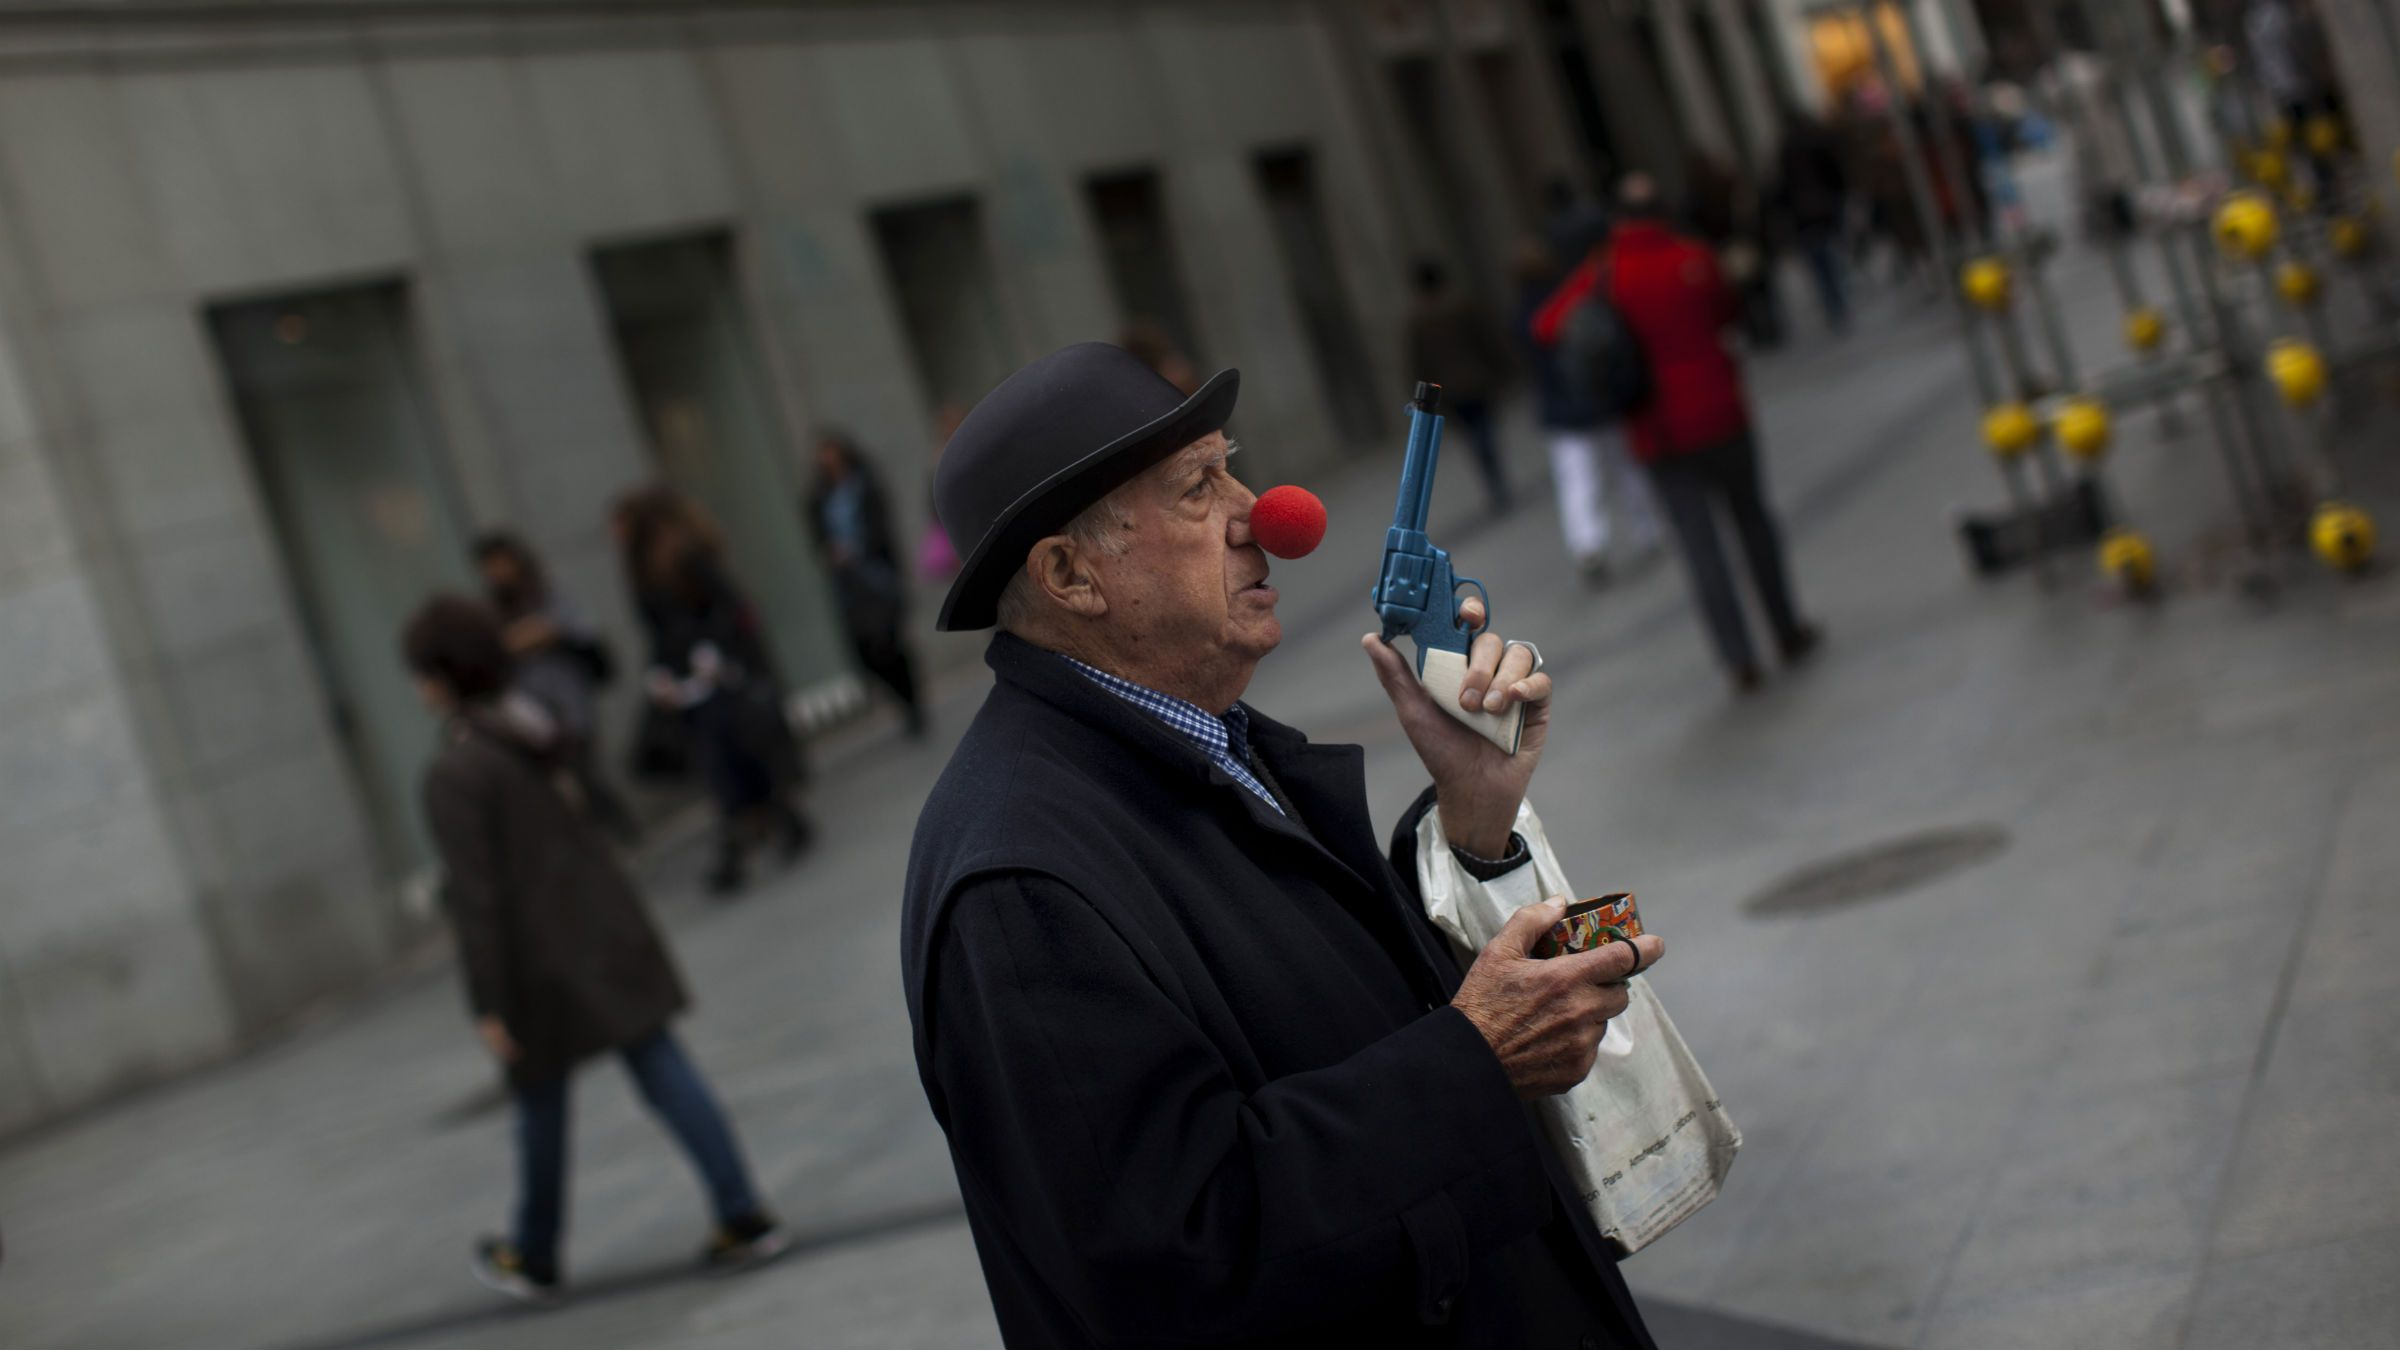 Old man wears a clown nose while begging